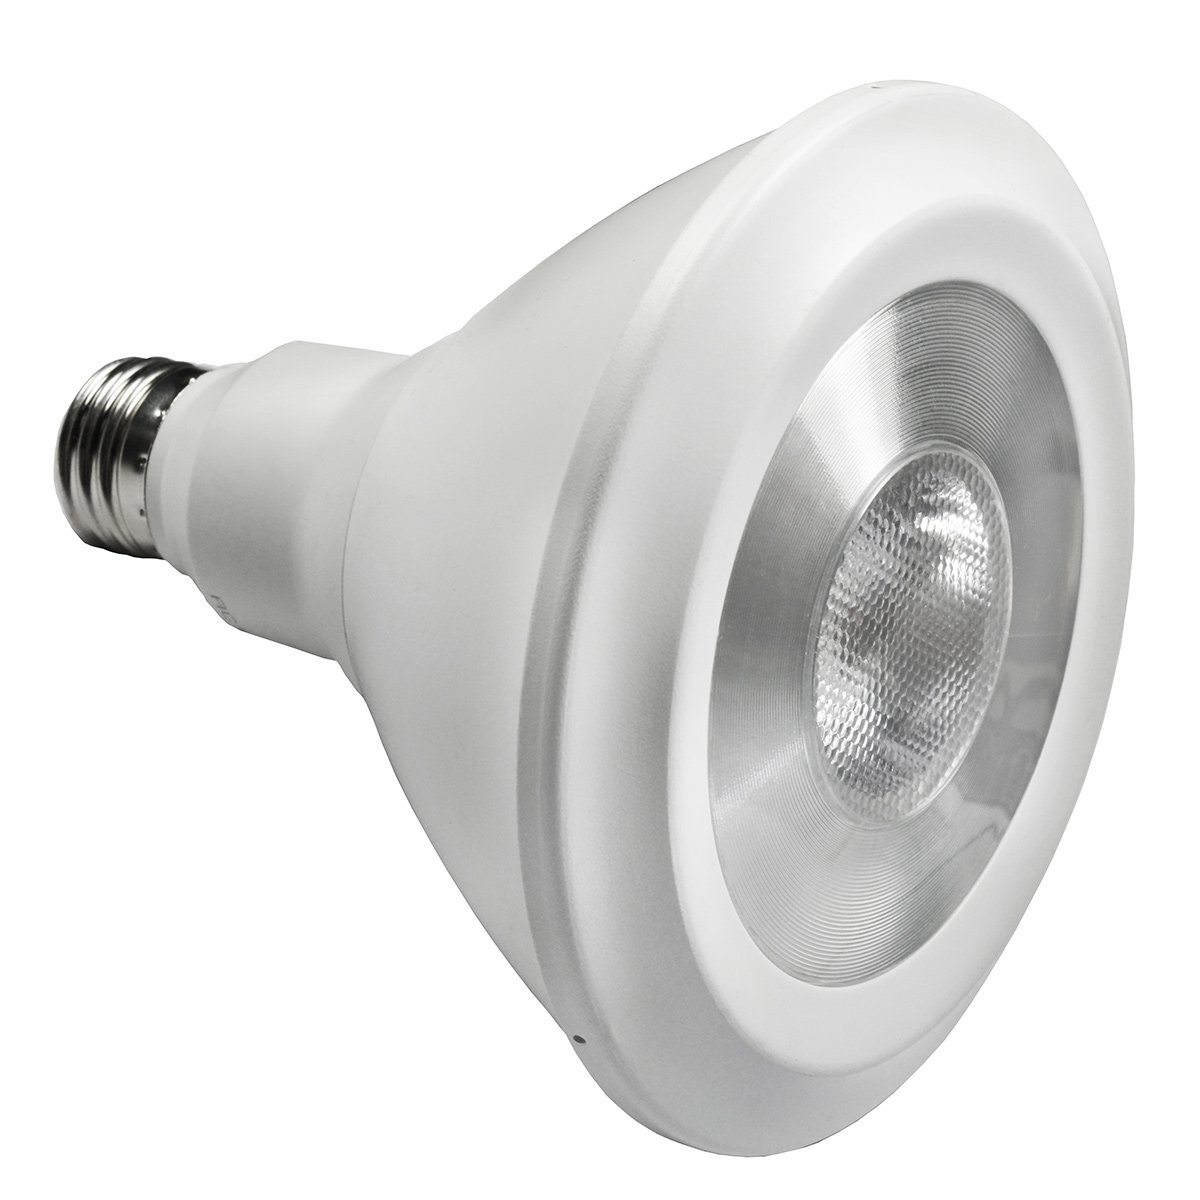 3000K Watts: 19W Type: PAR38 LED LED-PAR38-3K-UV 120-277V Volts: 120-277V